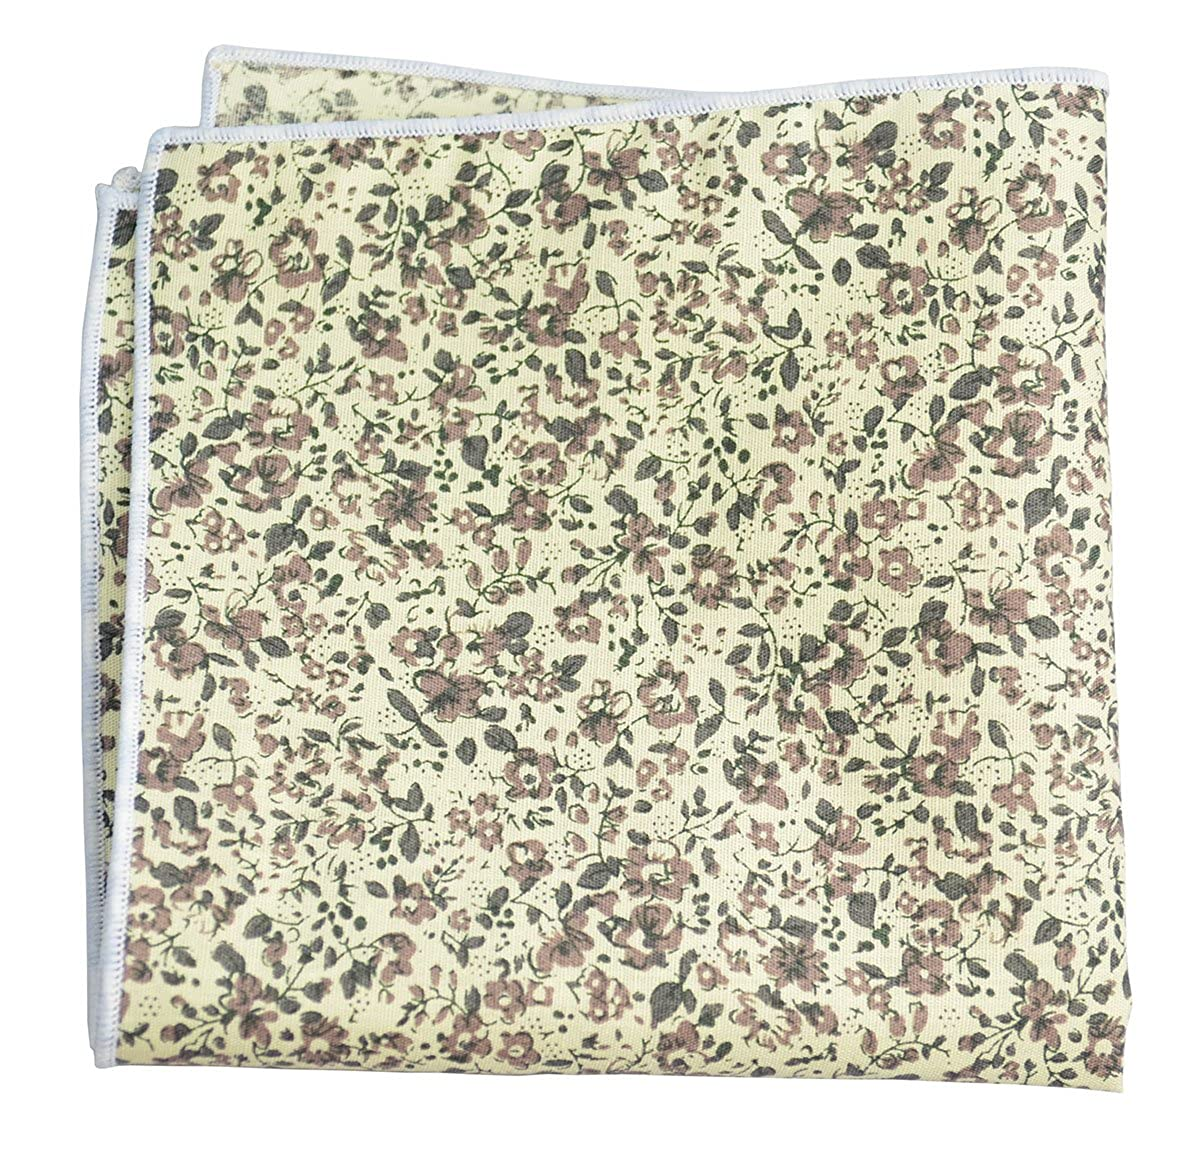 Wisteria Flowered 100/% Cotton Pocket Square Set by Paul Malone